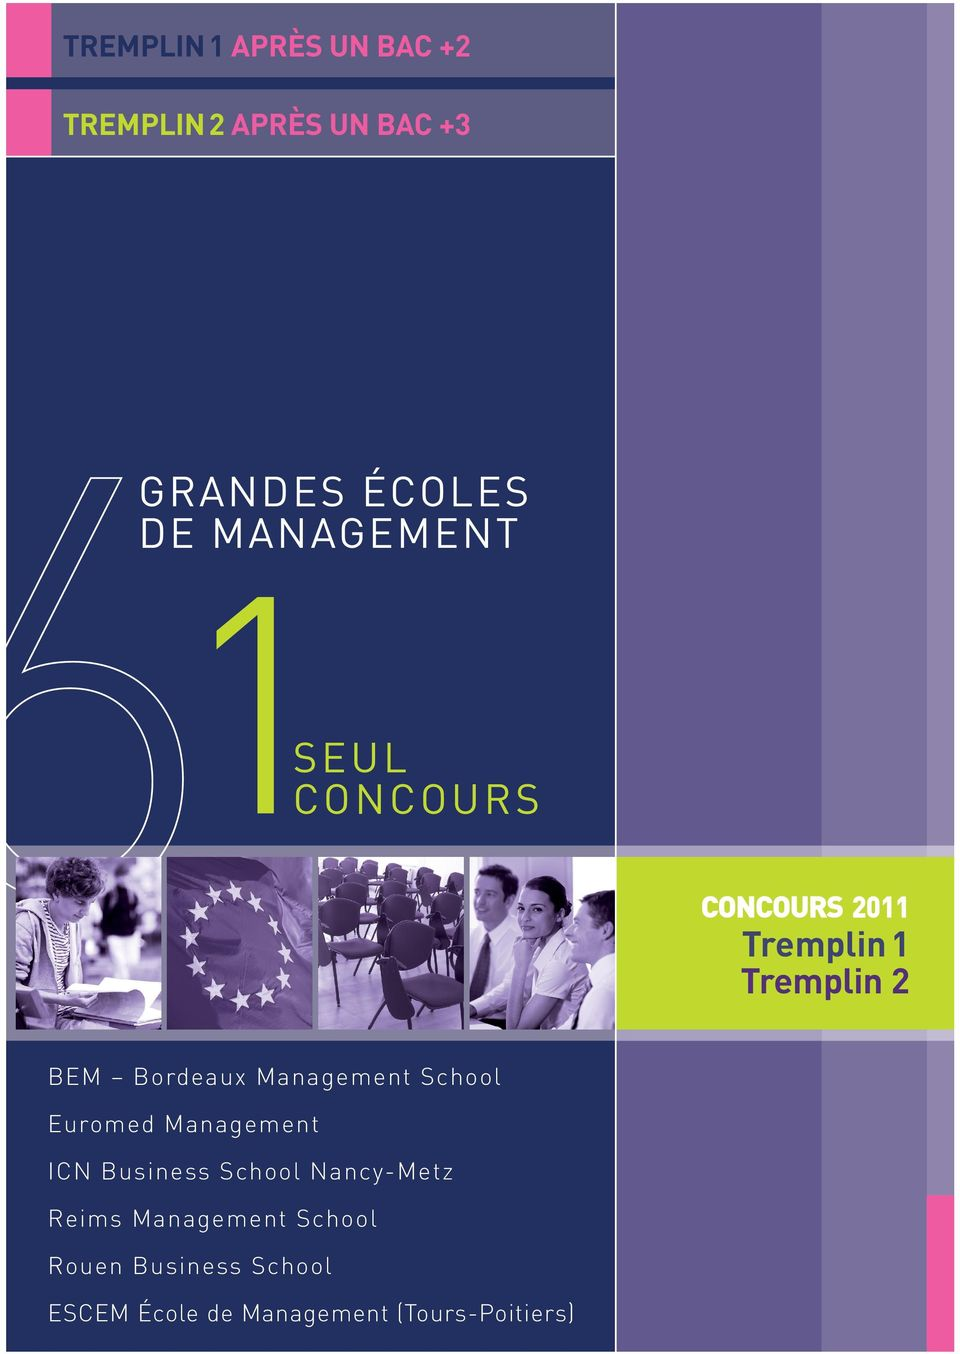 School Euromed Management ICN Business School Nancy-Metz Reims